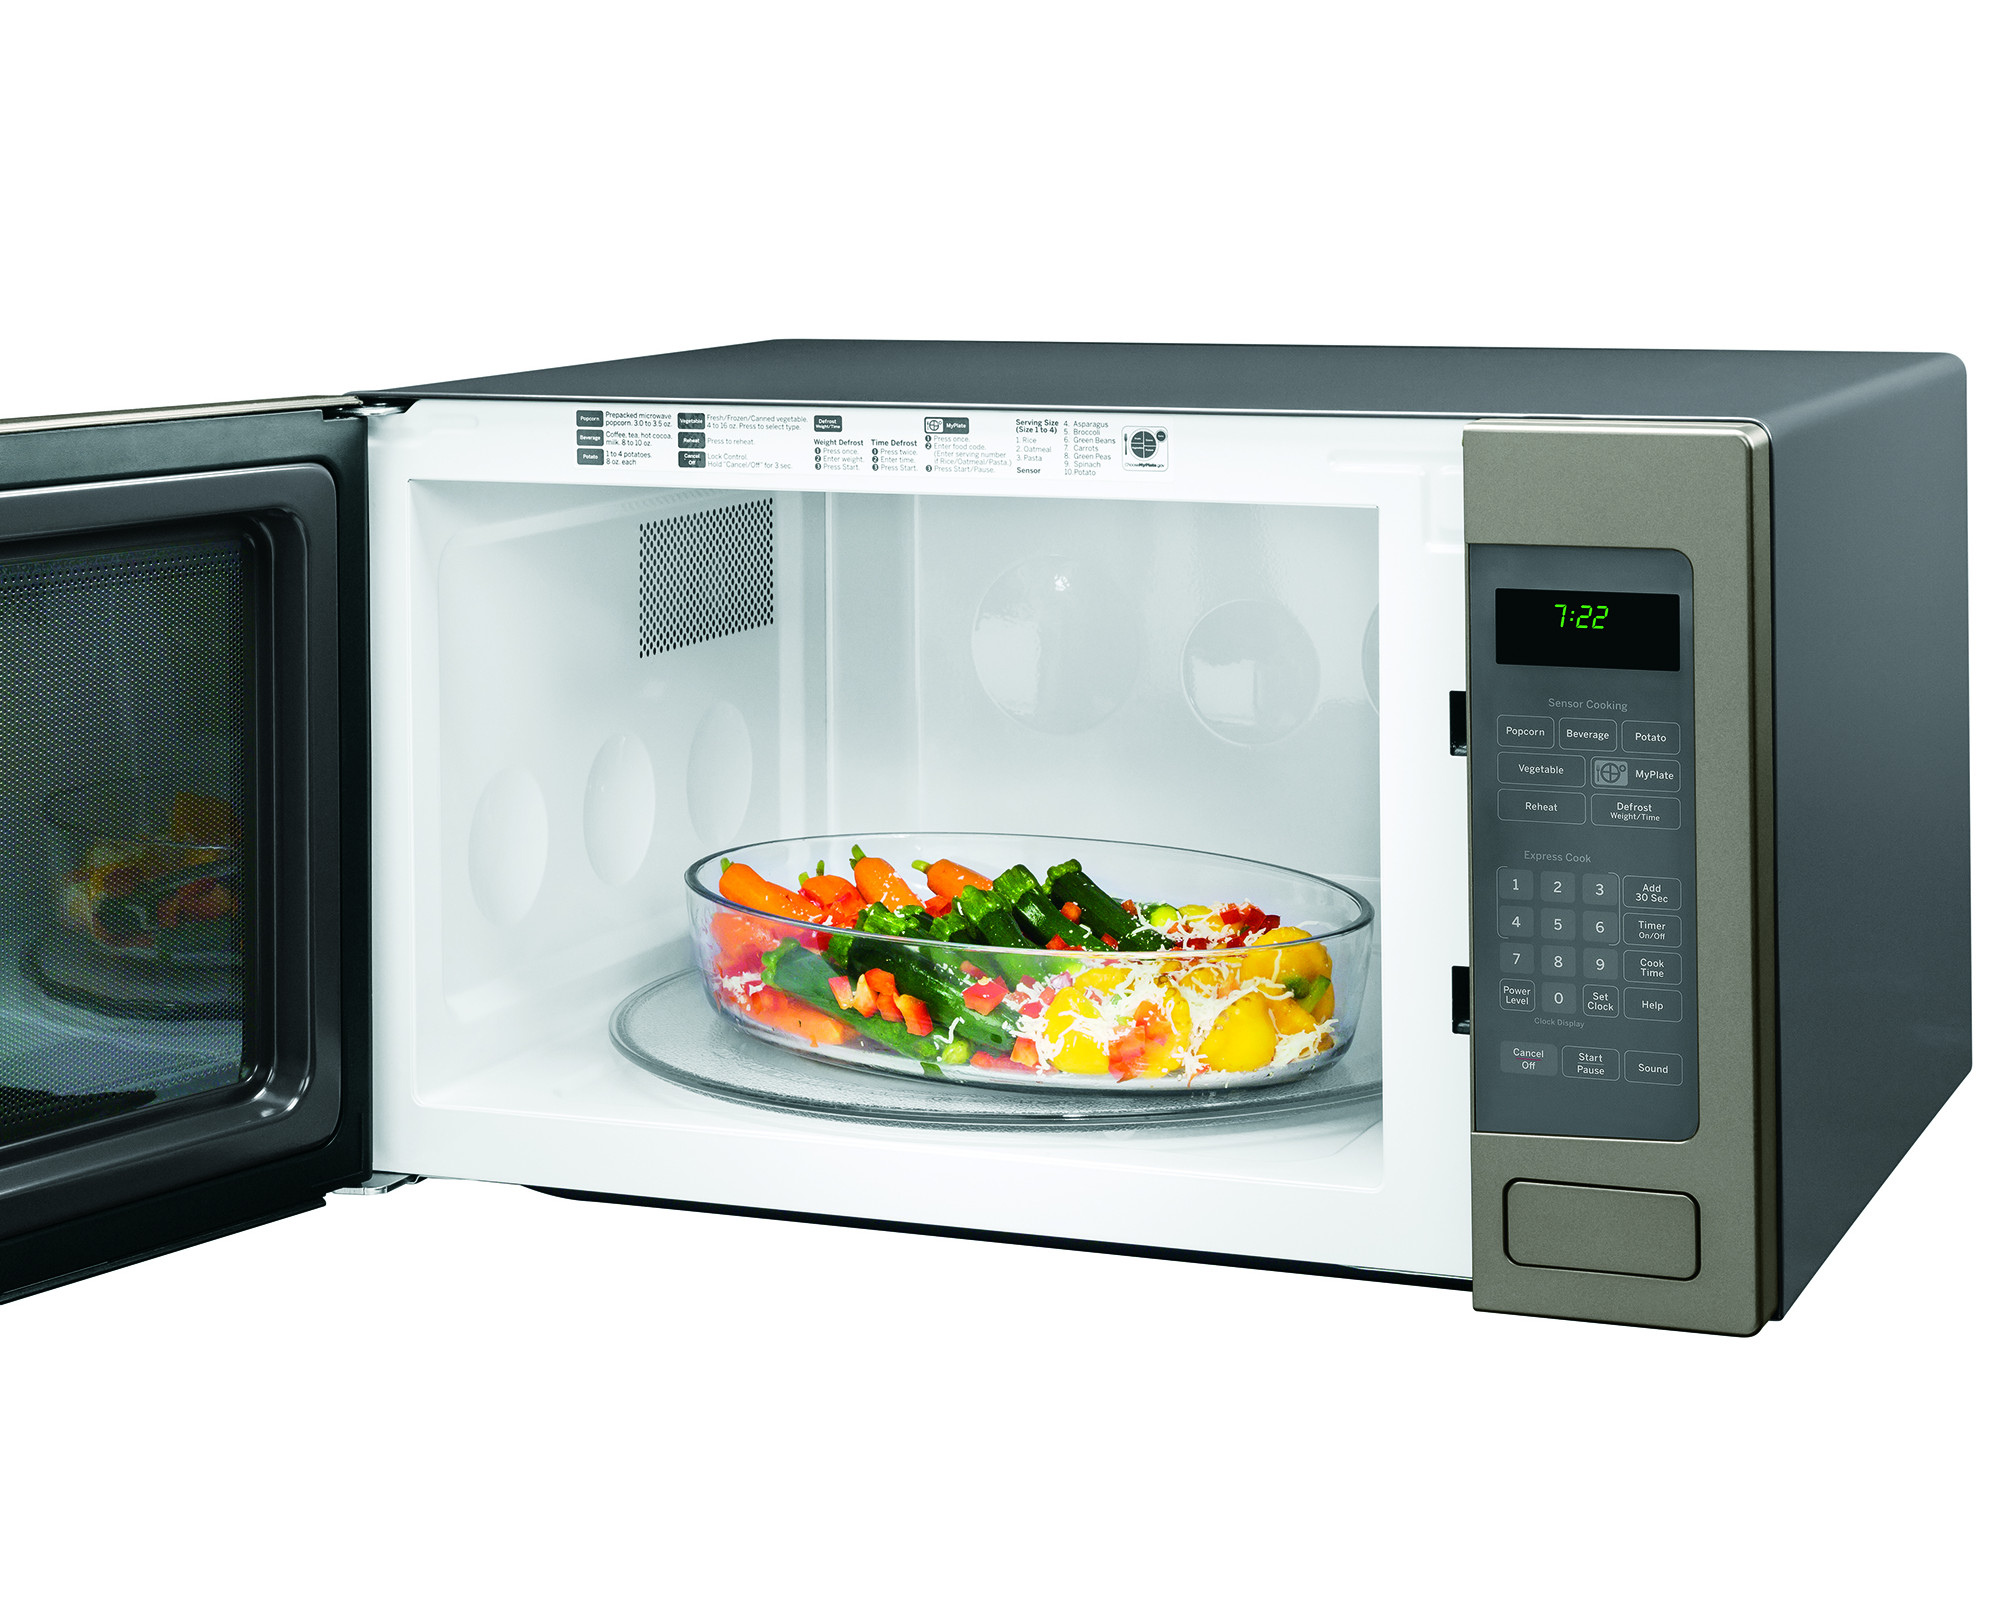 GE Appliances PEB7226EHES 2.2 cu. ft. Countertop Microwave Oven - Slate